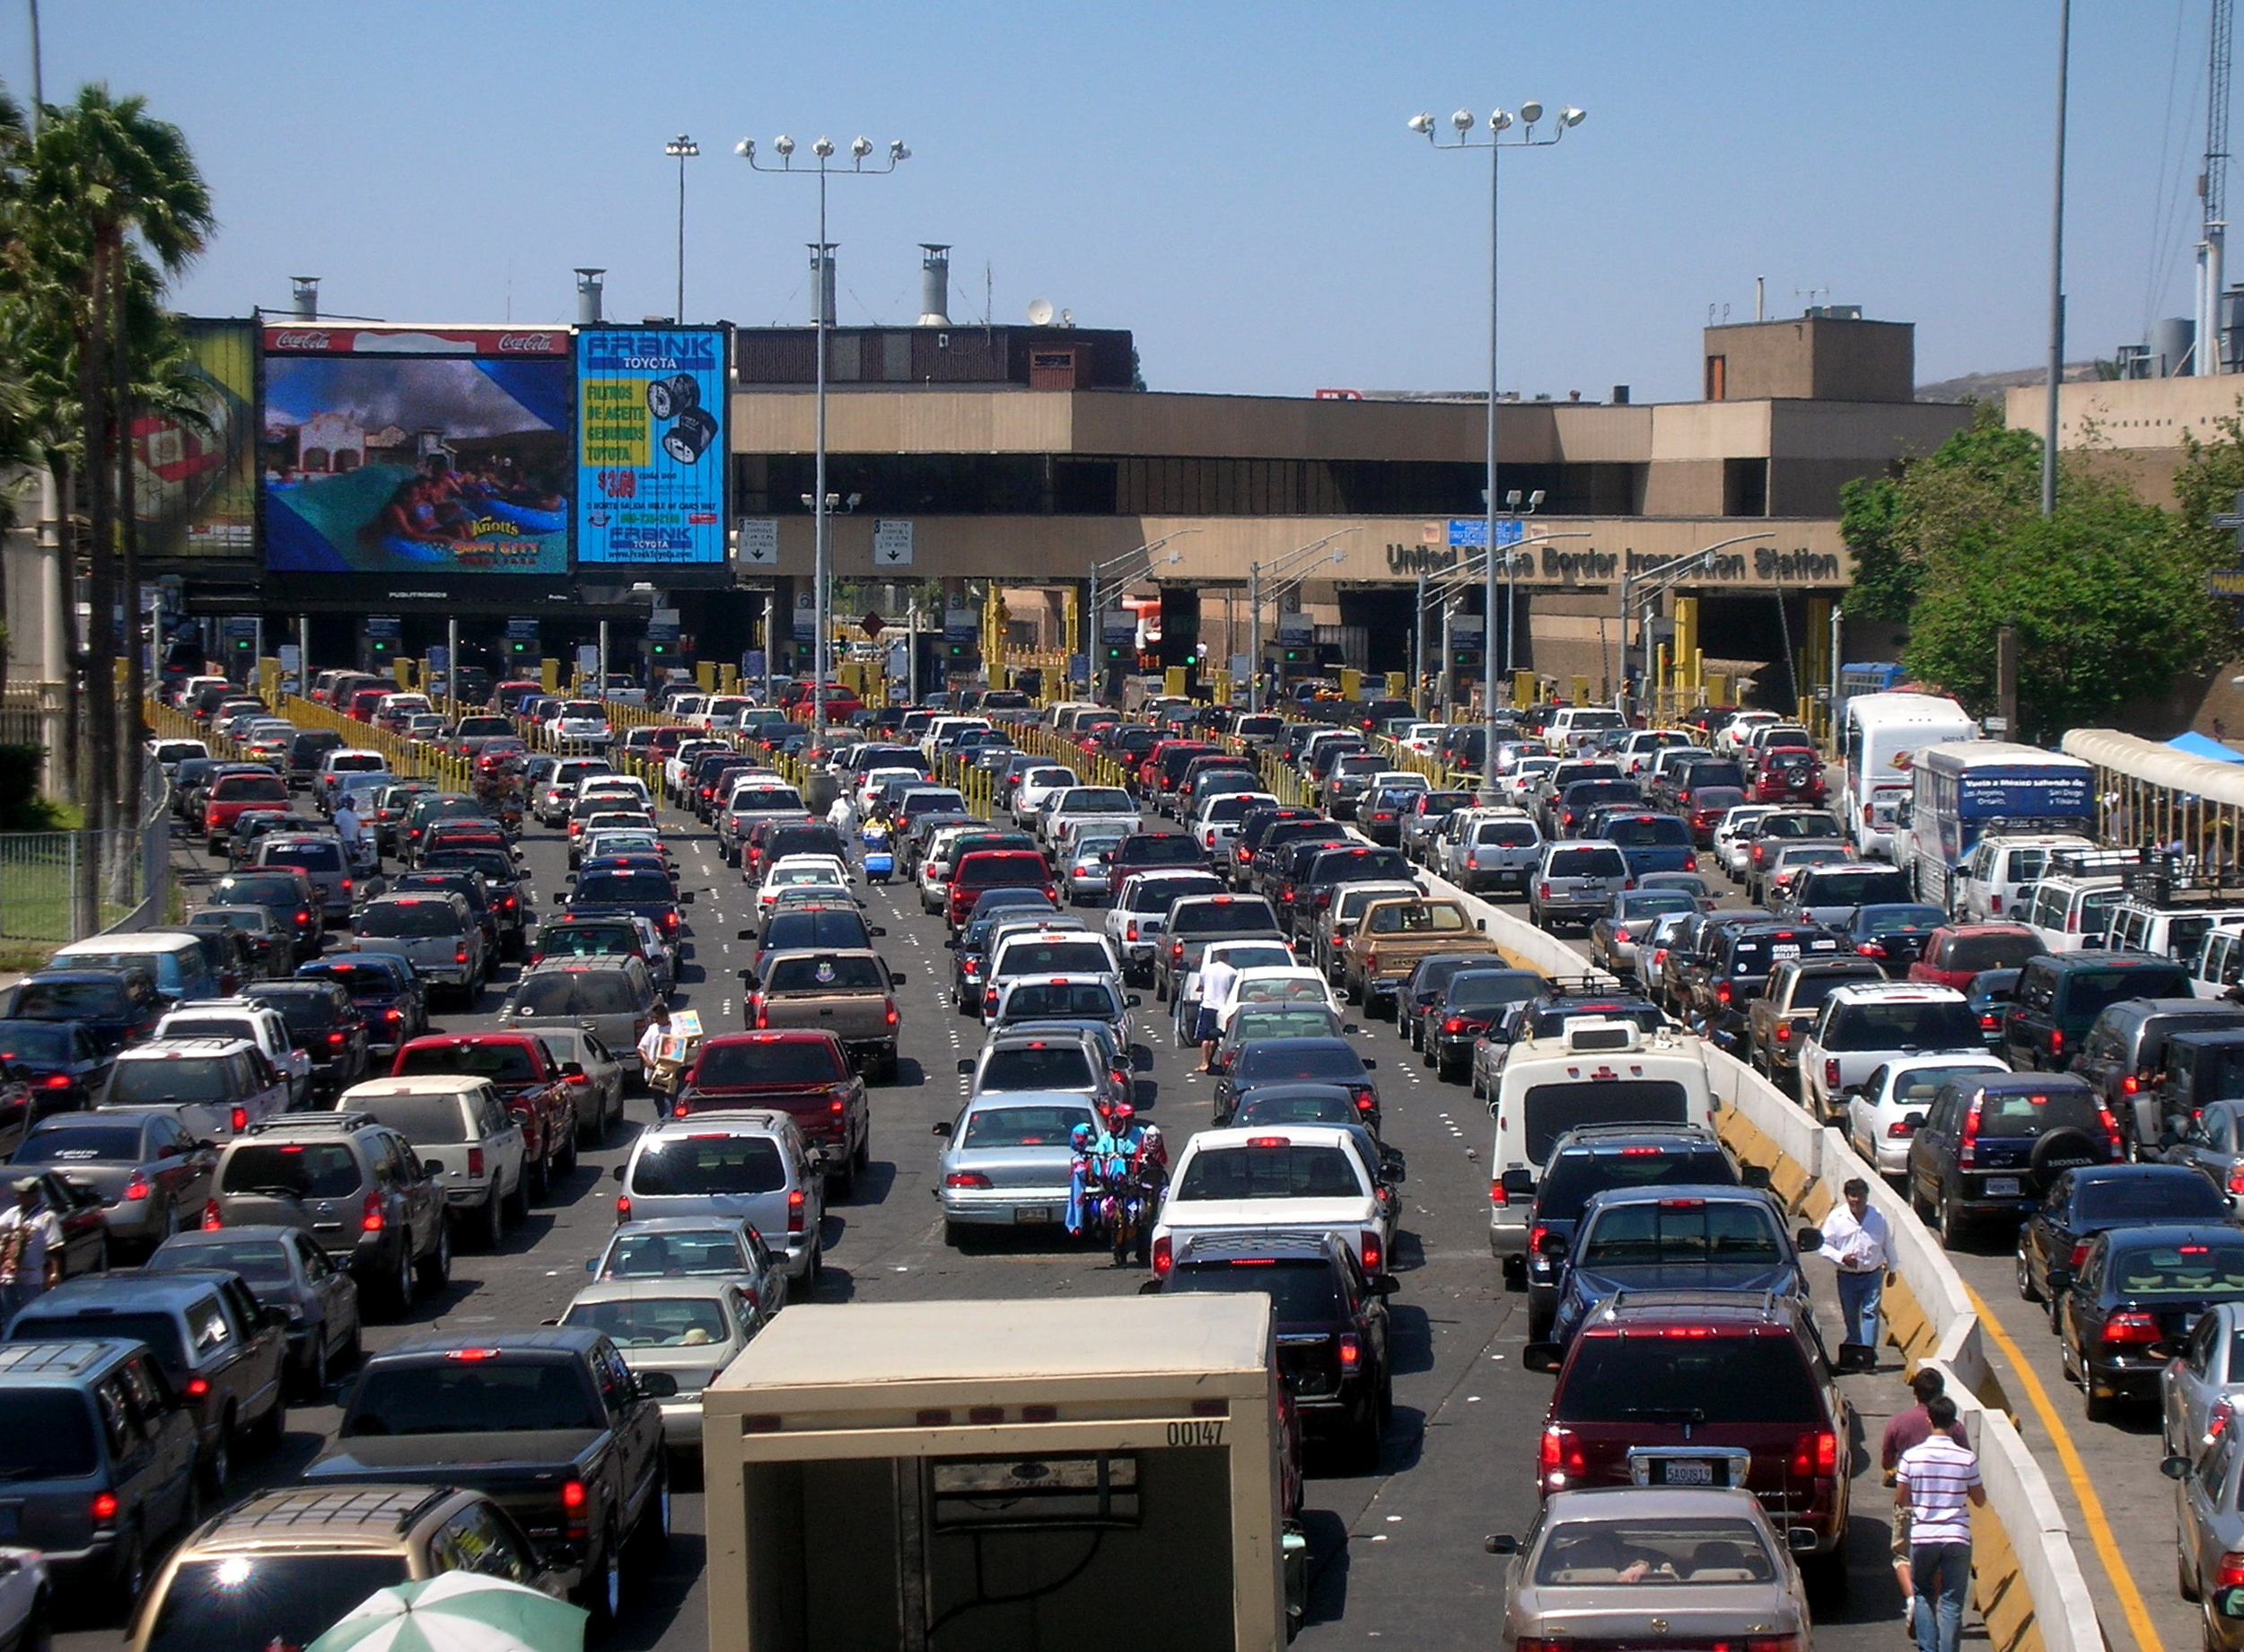 San Ysidro Border Crossing (via Wikipedia)